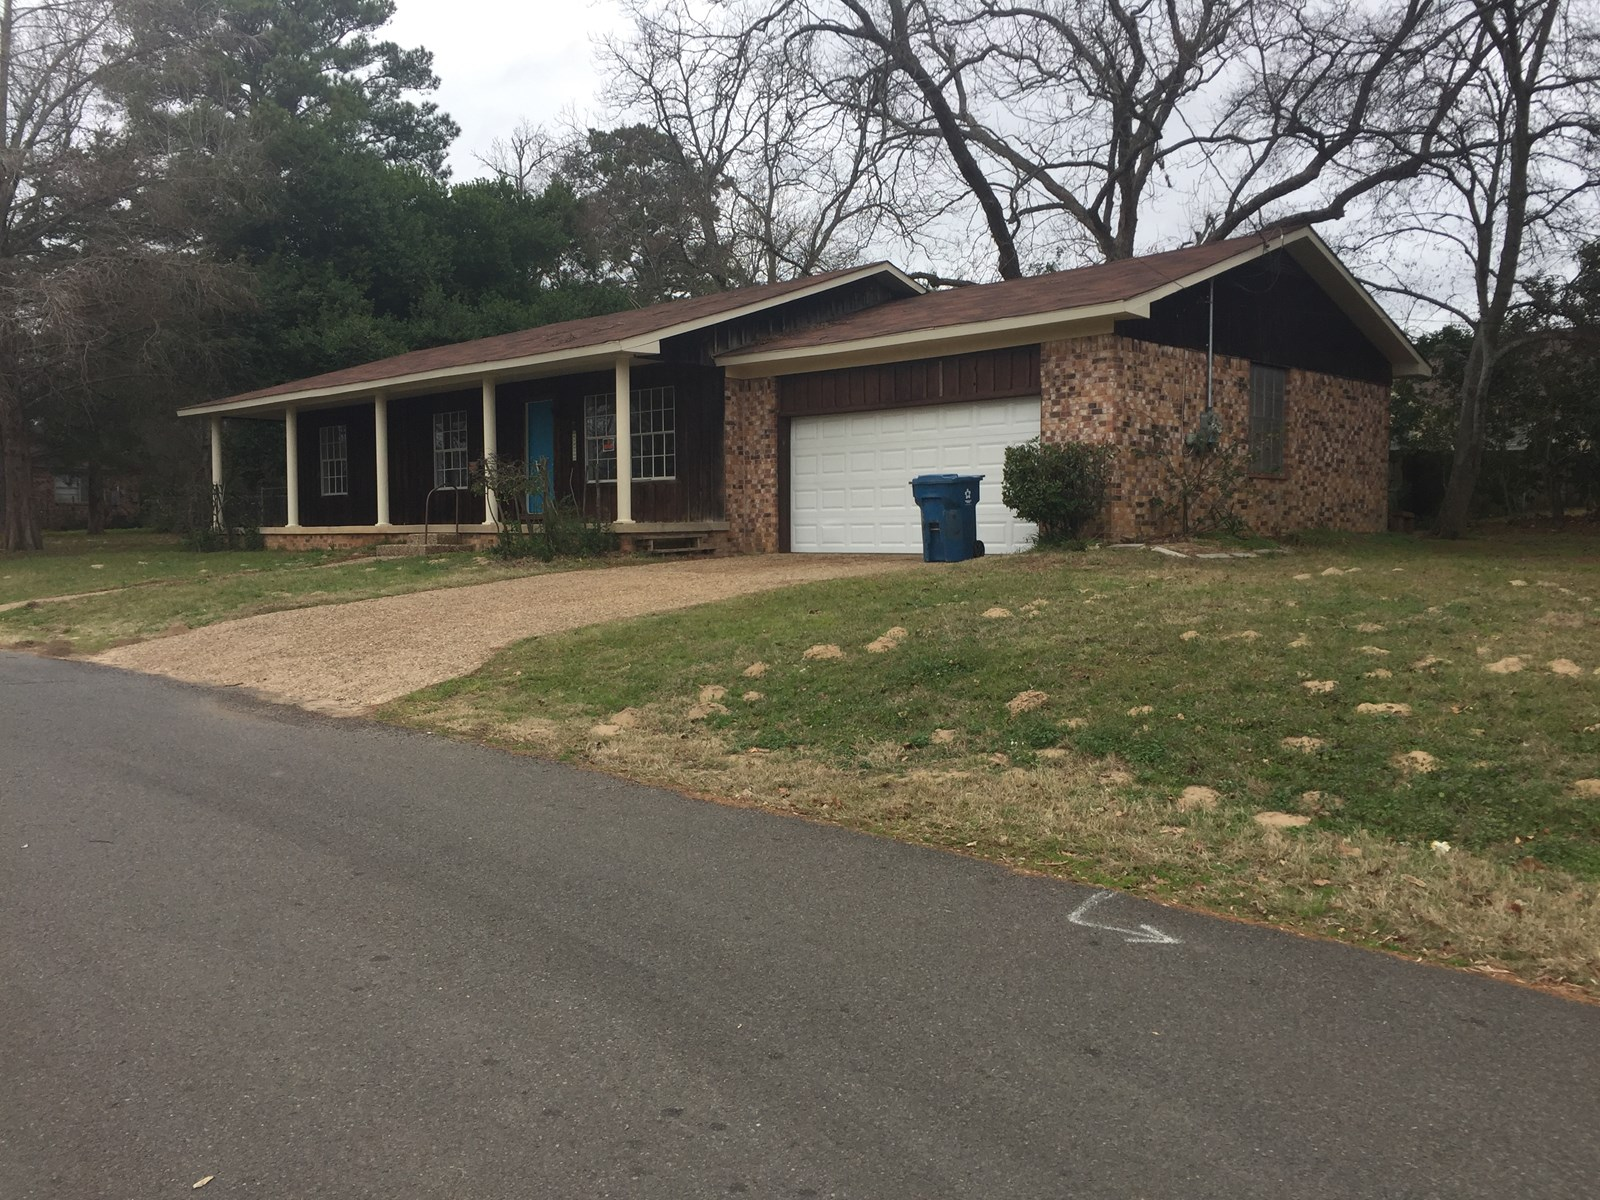 Rusk, TX, Cherokee County, TX Home for Sale